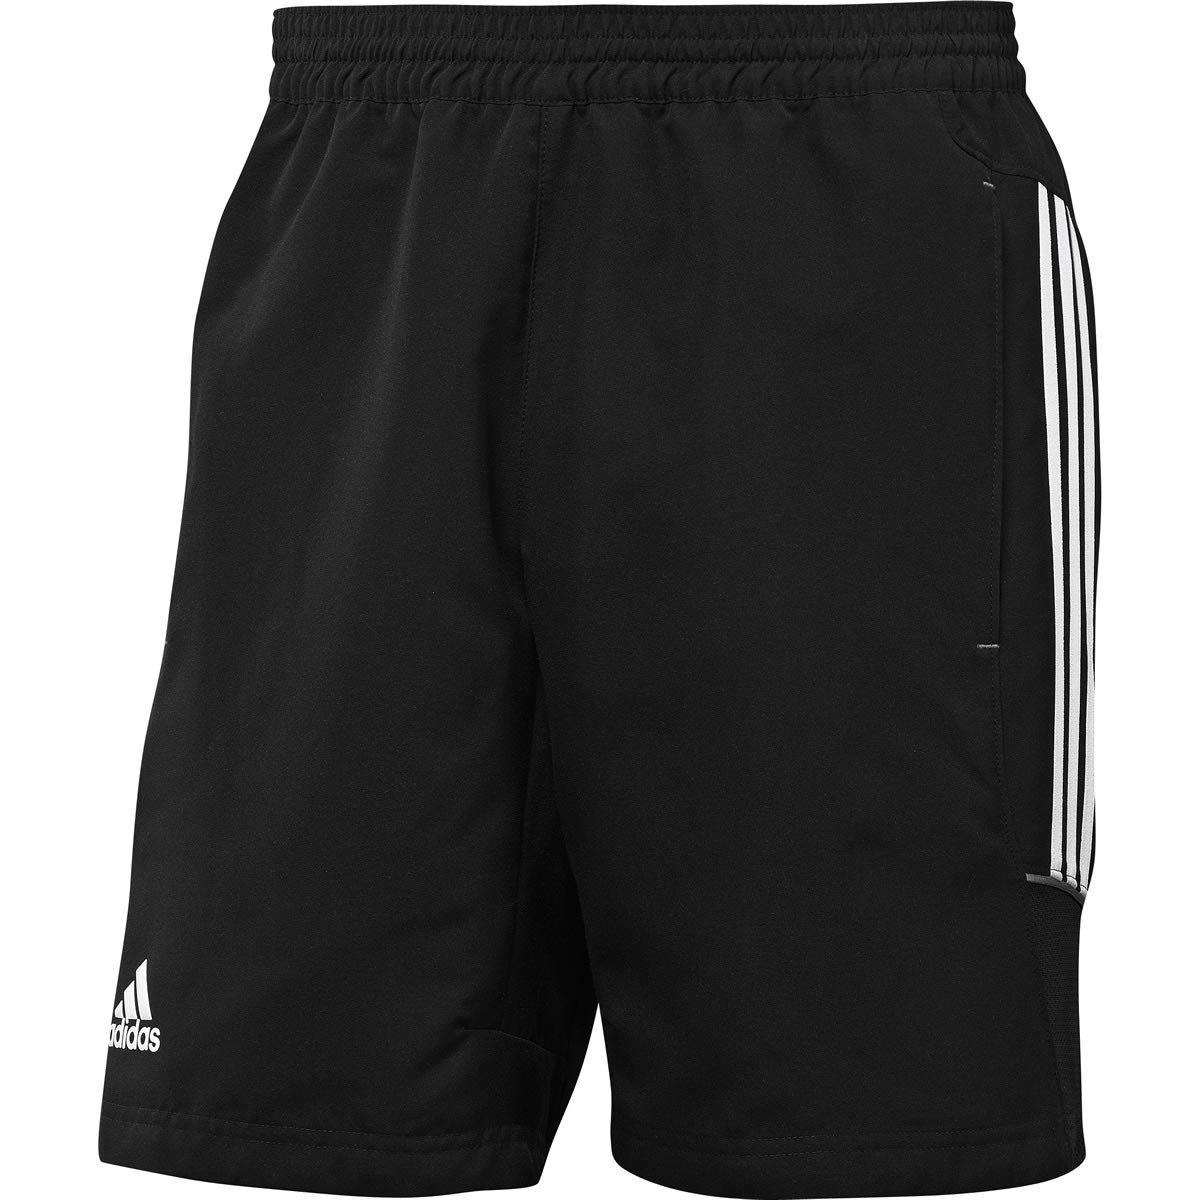 adidas m nner t12 woven short herren kurze hose jogging fitness fu ball schwarz ebay. Black Bedroom Furniture Sets. Home Design Ideas